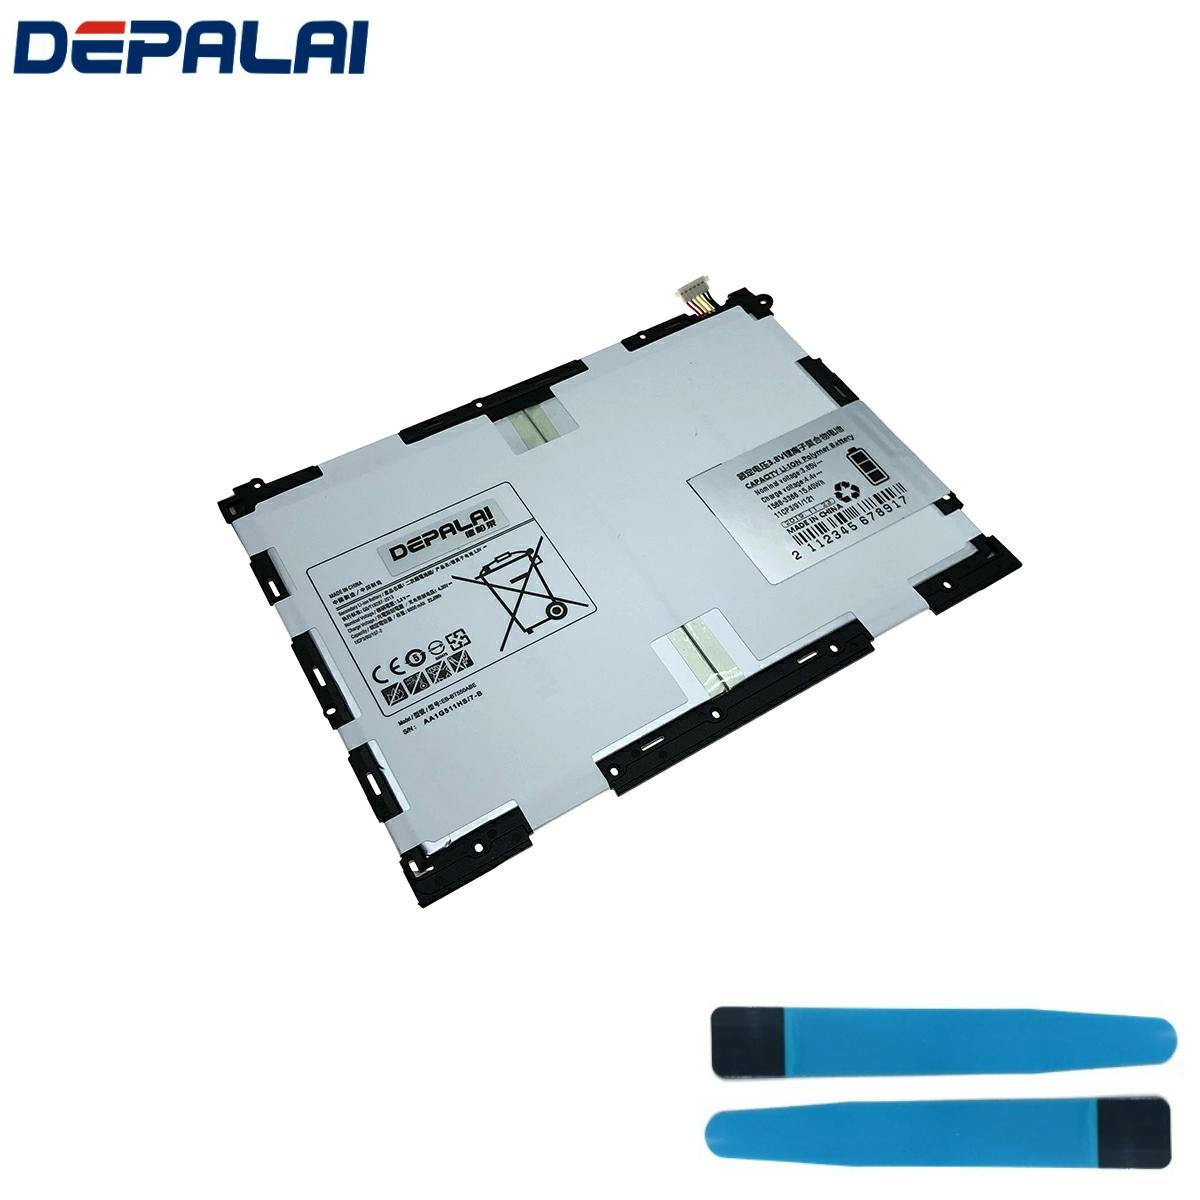 NEW Good quality AAA 6000mAh BT550ABE Battery For Samsung Galaxy Tab A 9.7 SM-T550 T550 T555 T550X P550 <font><b>P555</b></font> P550C With Tools image